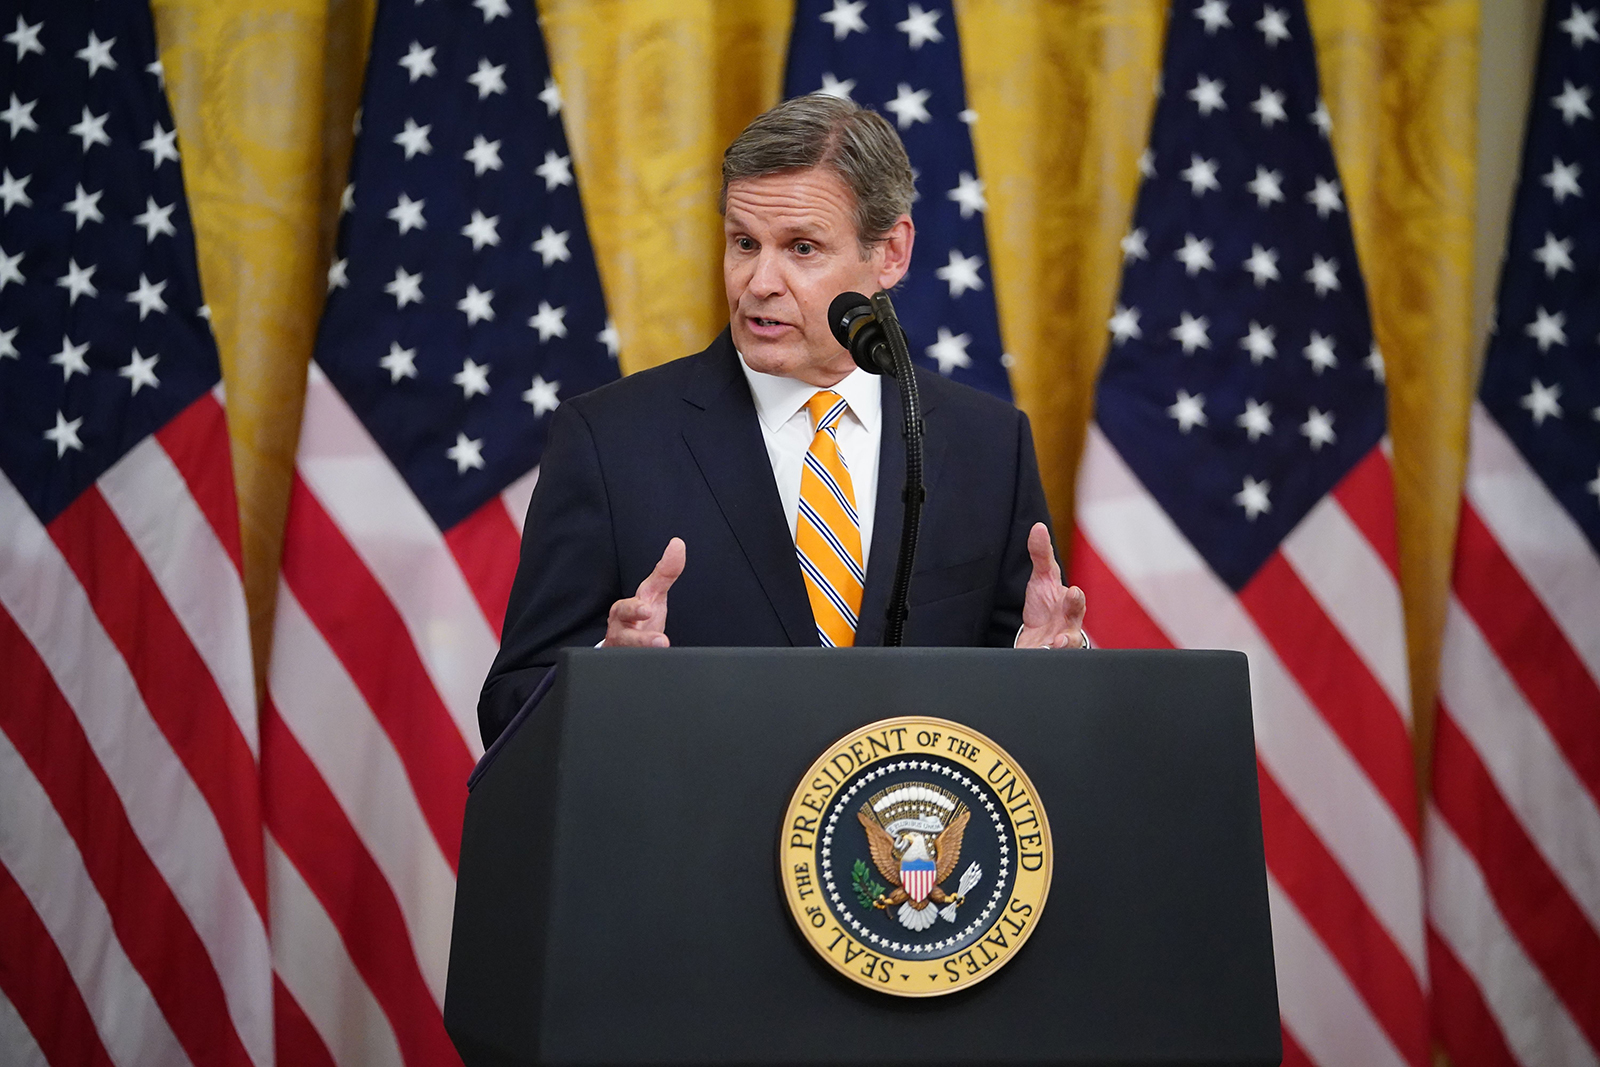 Tennessee Gov. Bill Lee speaks in the East Room of the White House in Washington, DC on April 30.